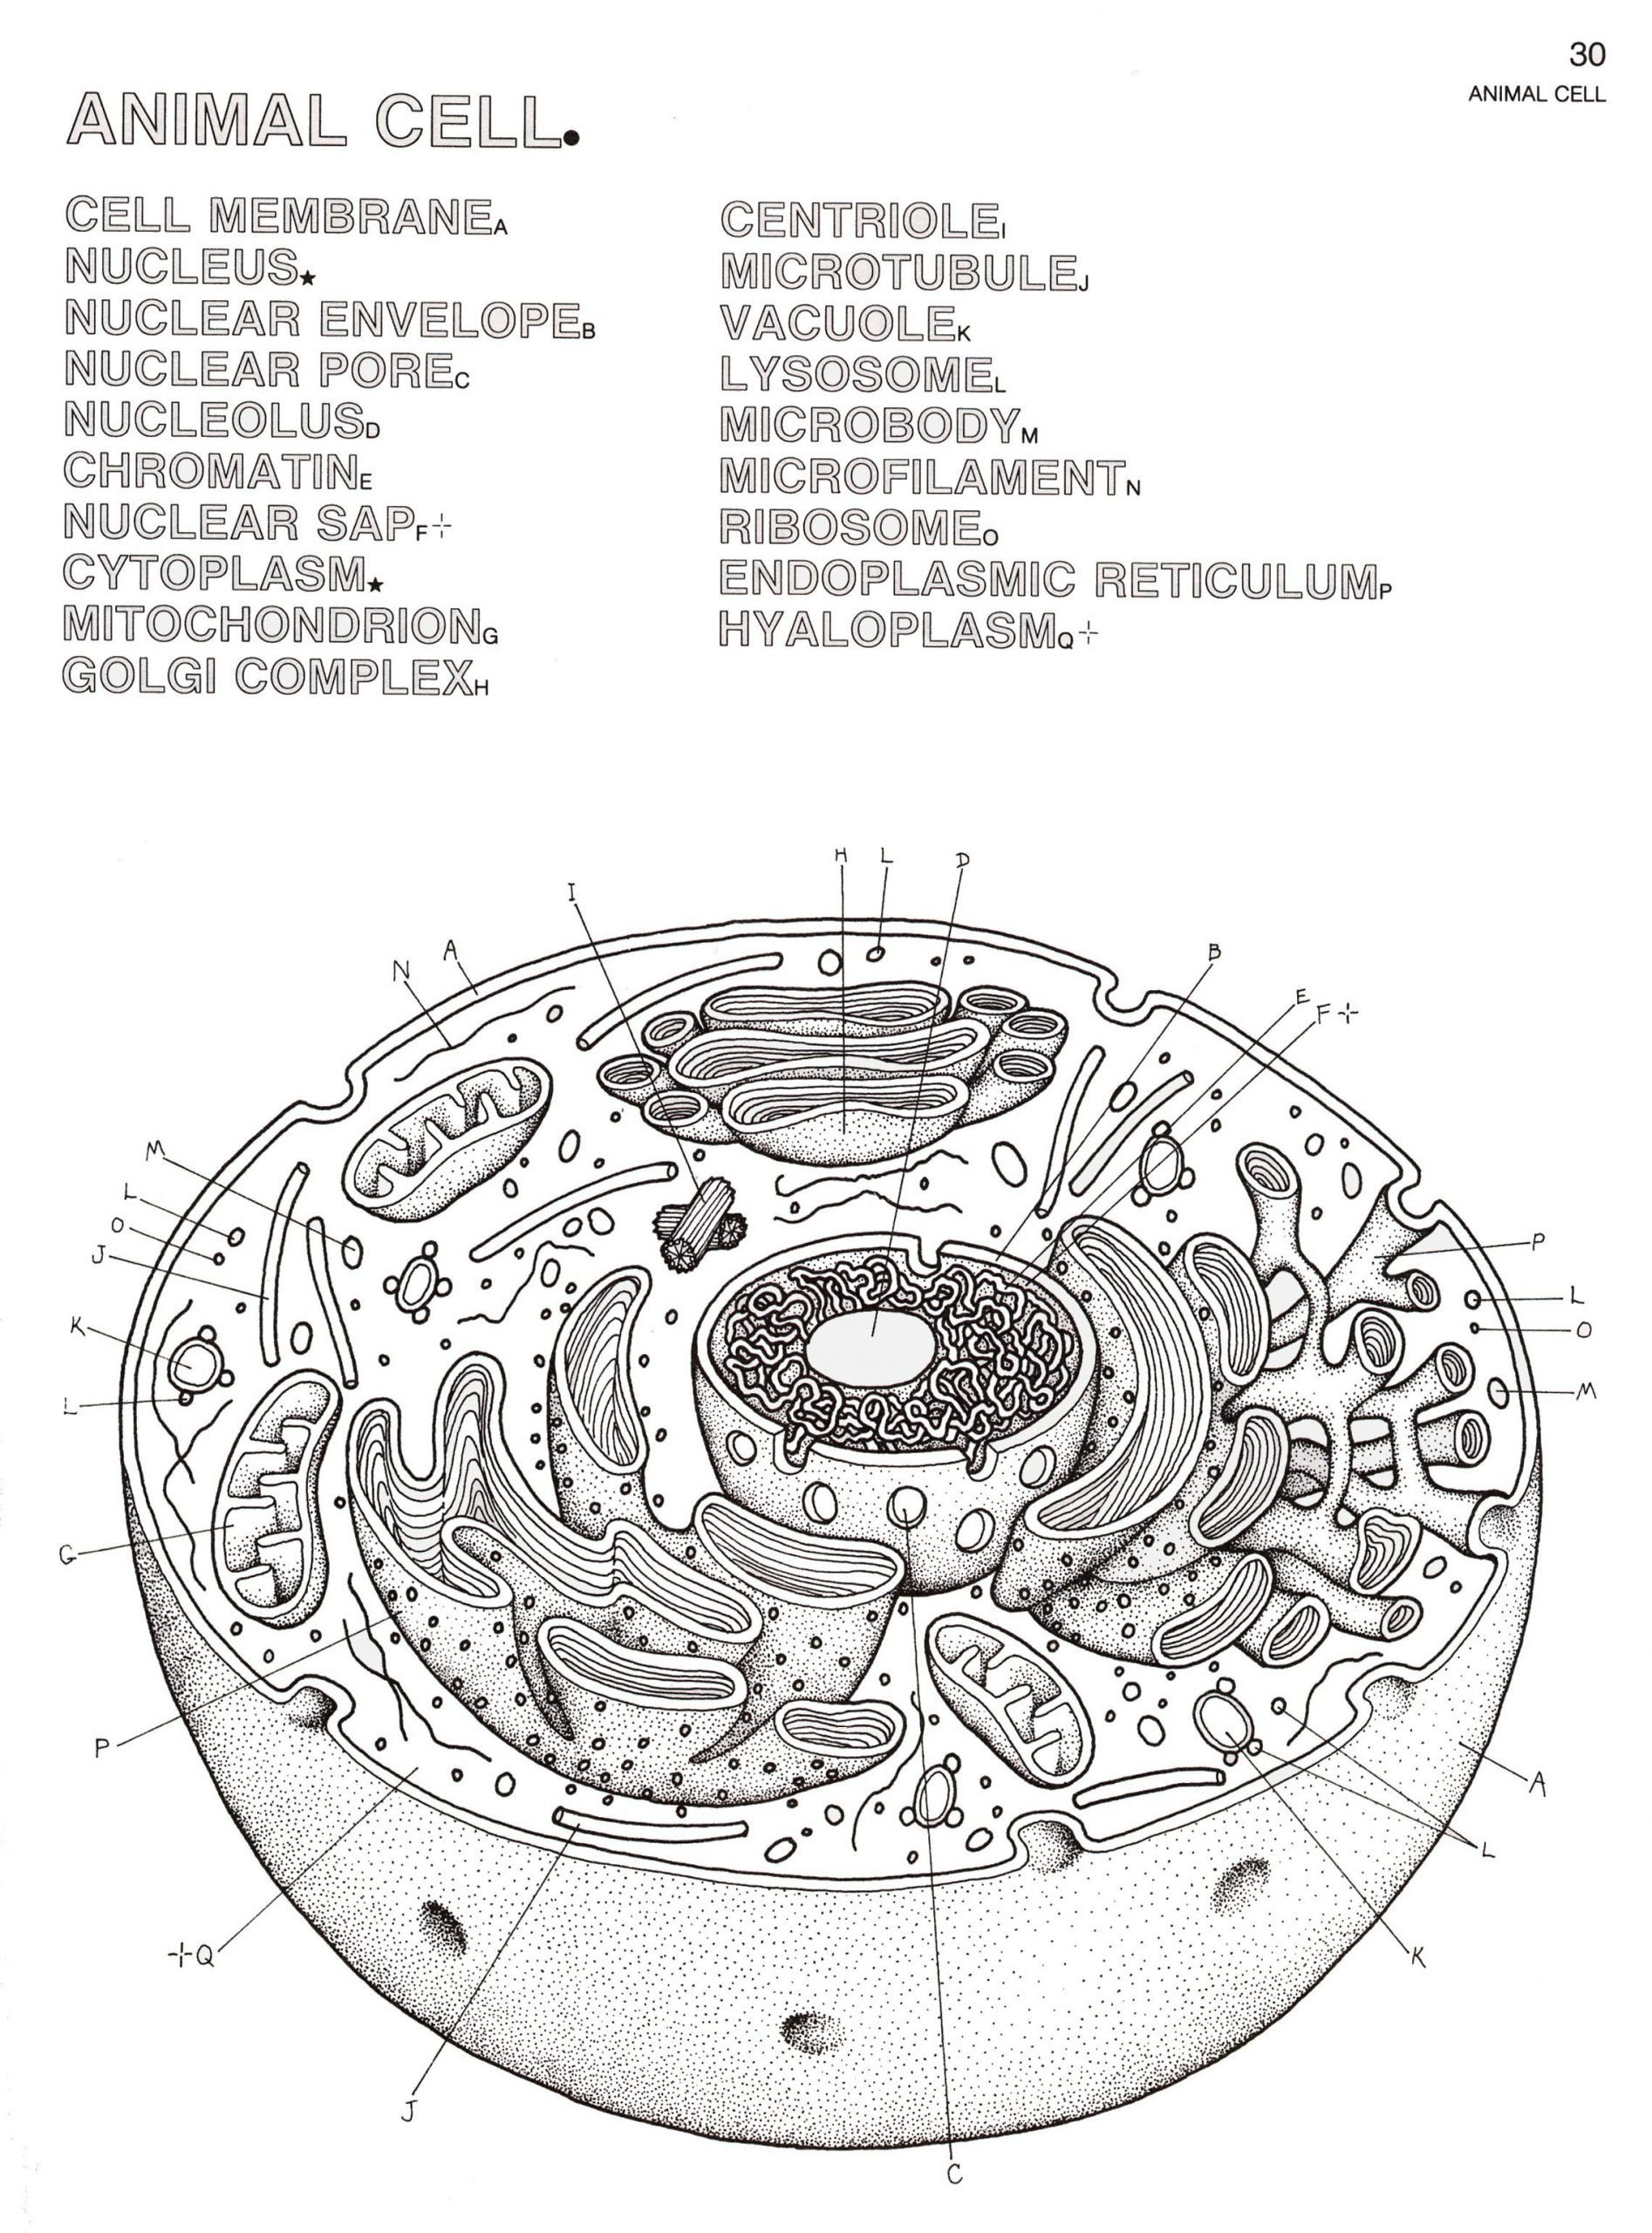 animal cell coloring sheet coloring pages lovely biology coloring pages biology coloring book 2280c of animal cell coloring sheet coloring pages scaled